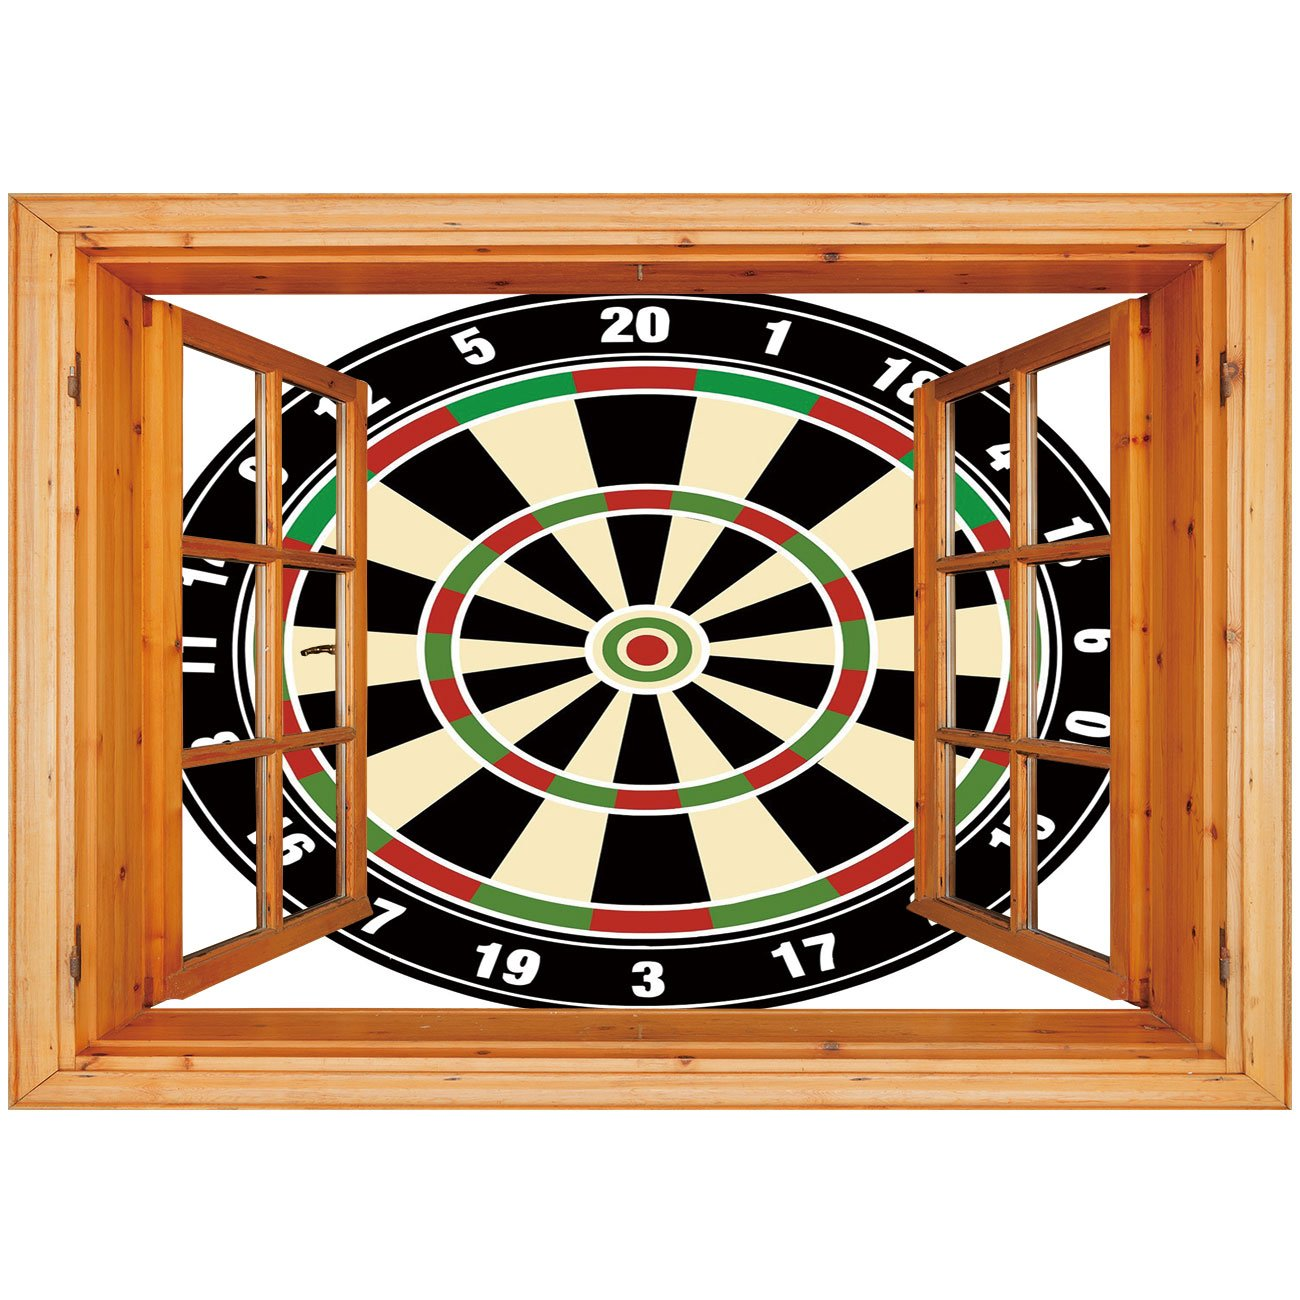 3D Depth Illusion Vinyl Wall Decal Sticker [ Sports,Dart Board Numbers Sports Accuracy Precision Target Leisure Time Graphic,Vermilion Green Black ] Window Frame Style Home Decor Art Removable Wall St